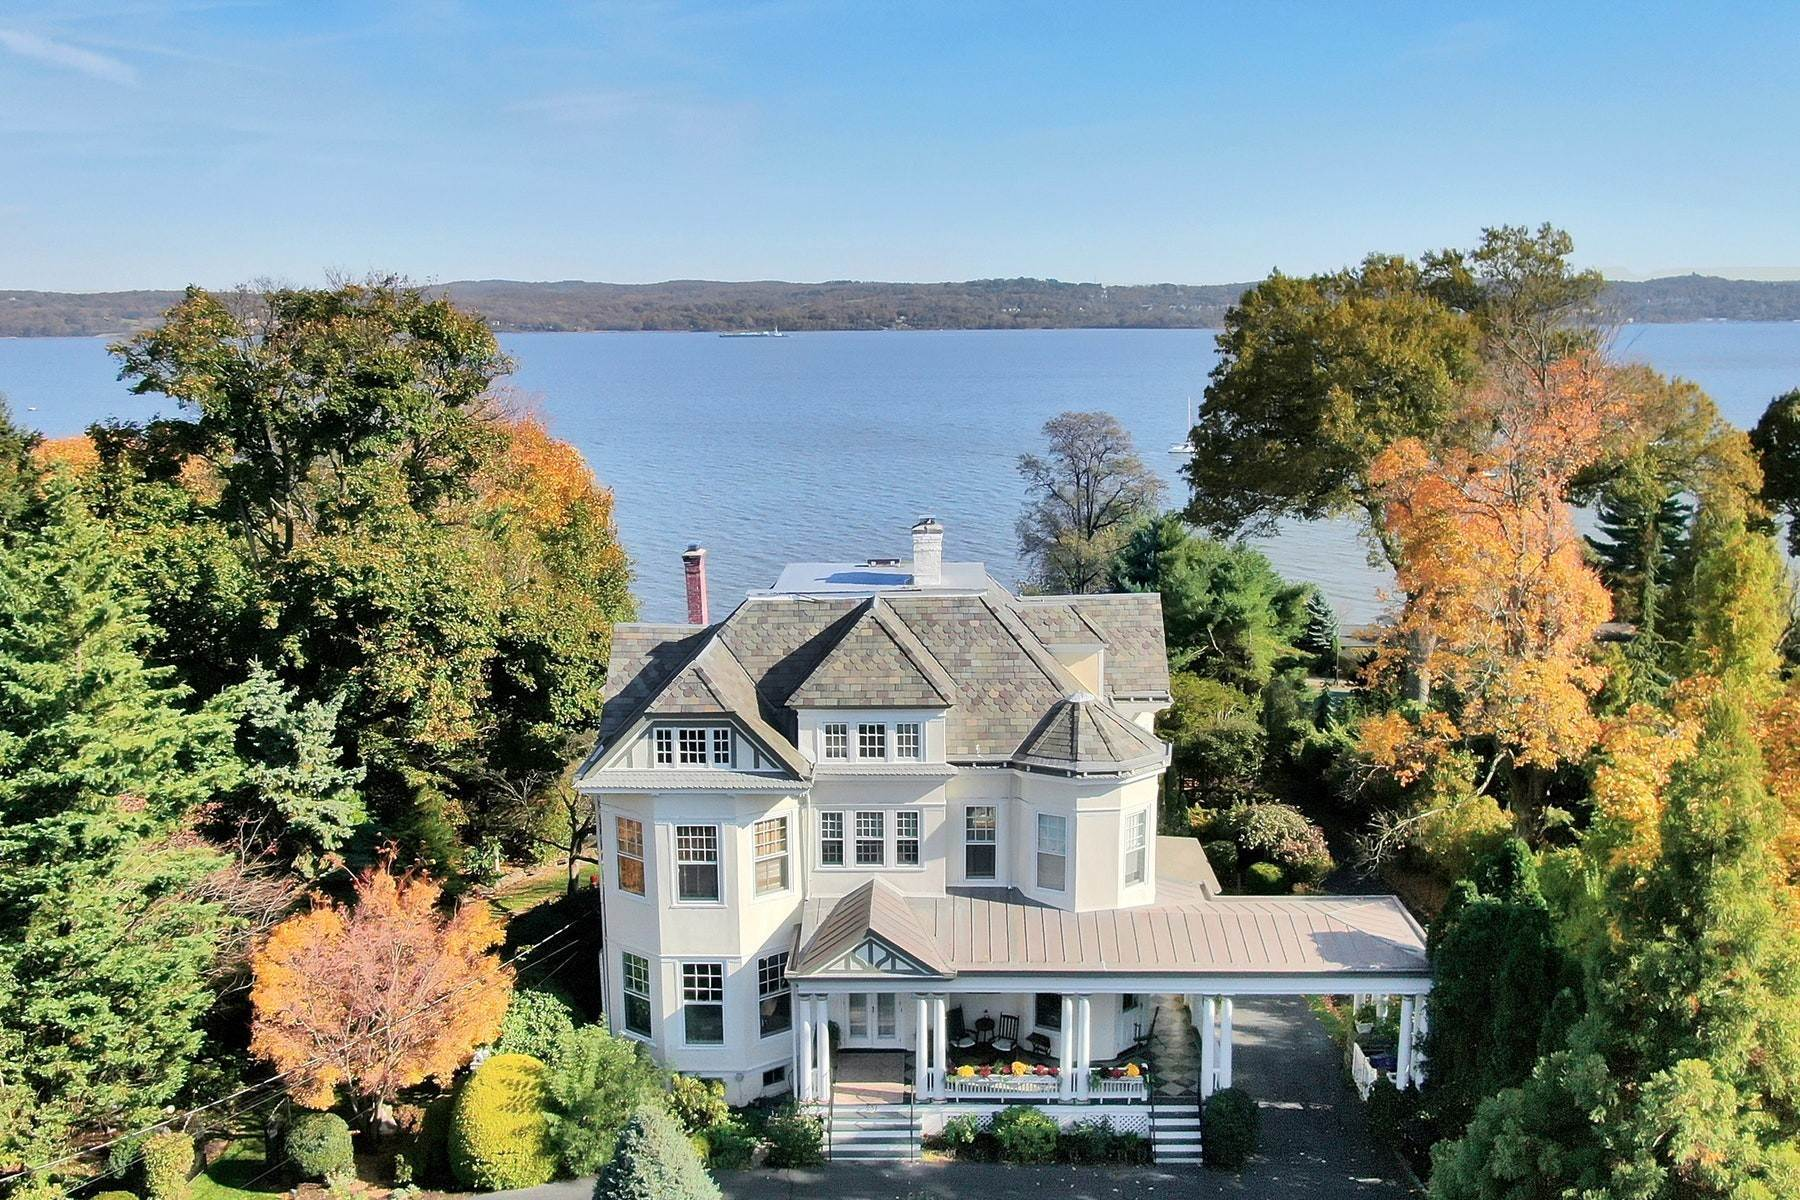 Single Family Homes for Sale at Picturesque Riverfront Home 251 N Broadway Nyack, New York 10960 United States